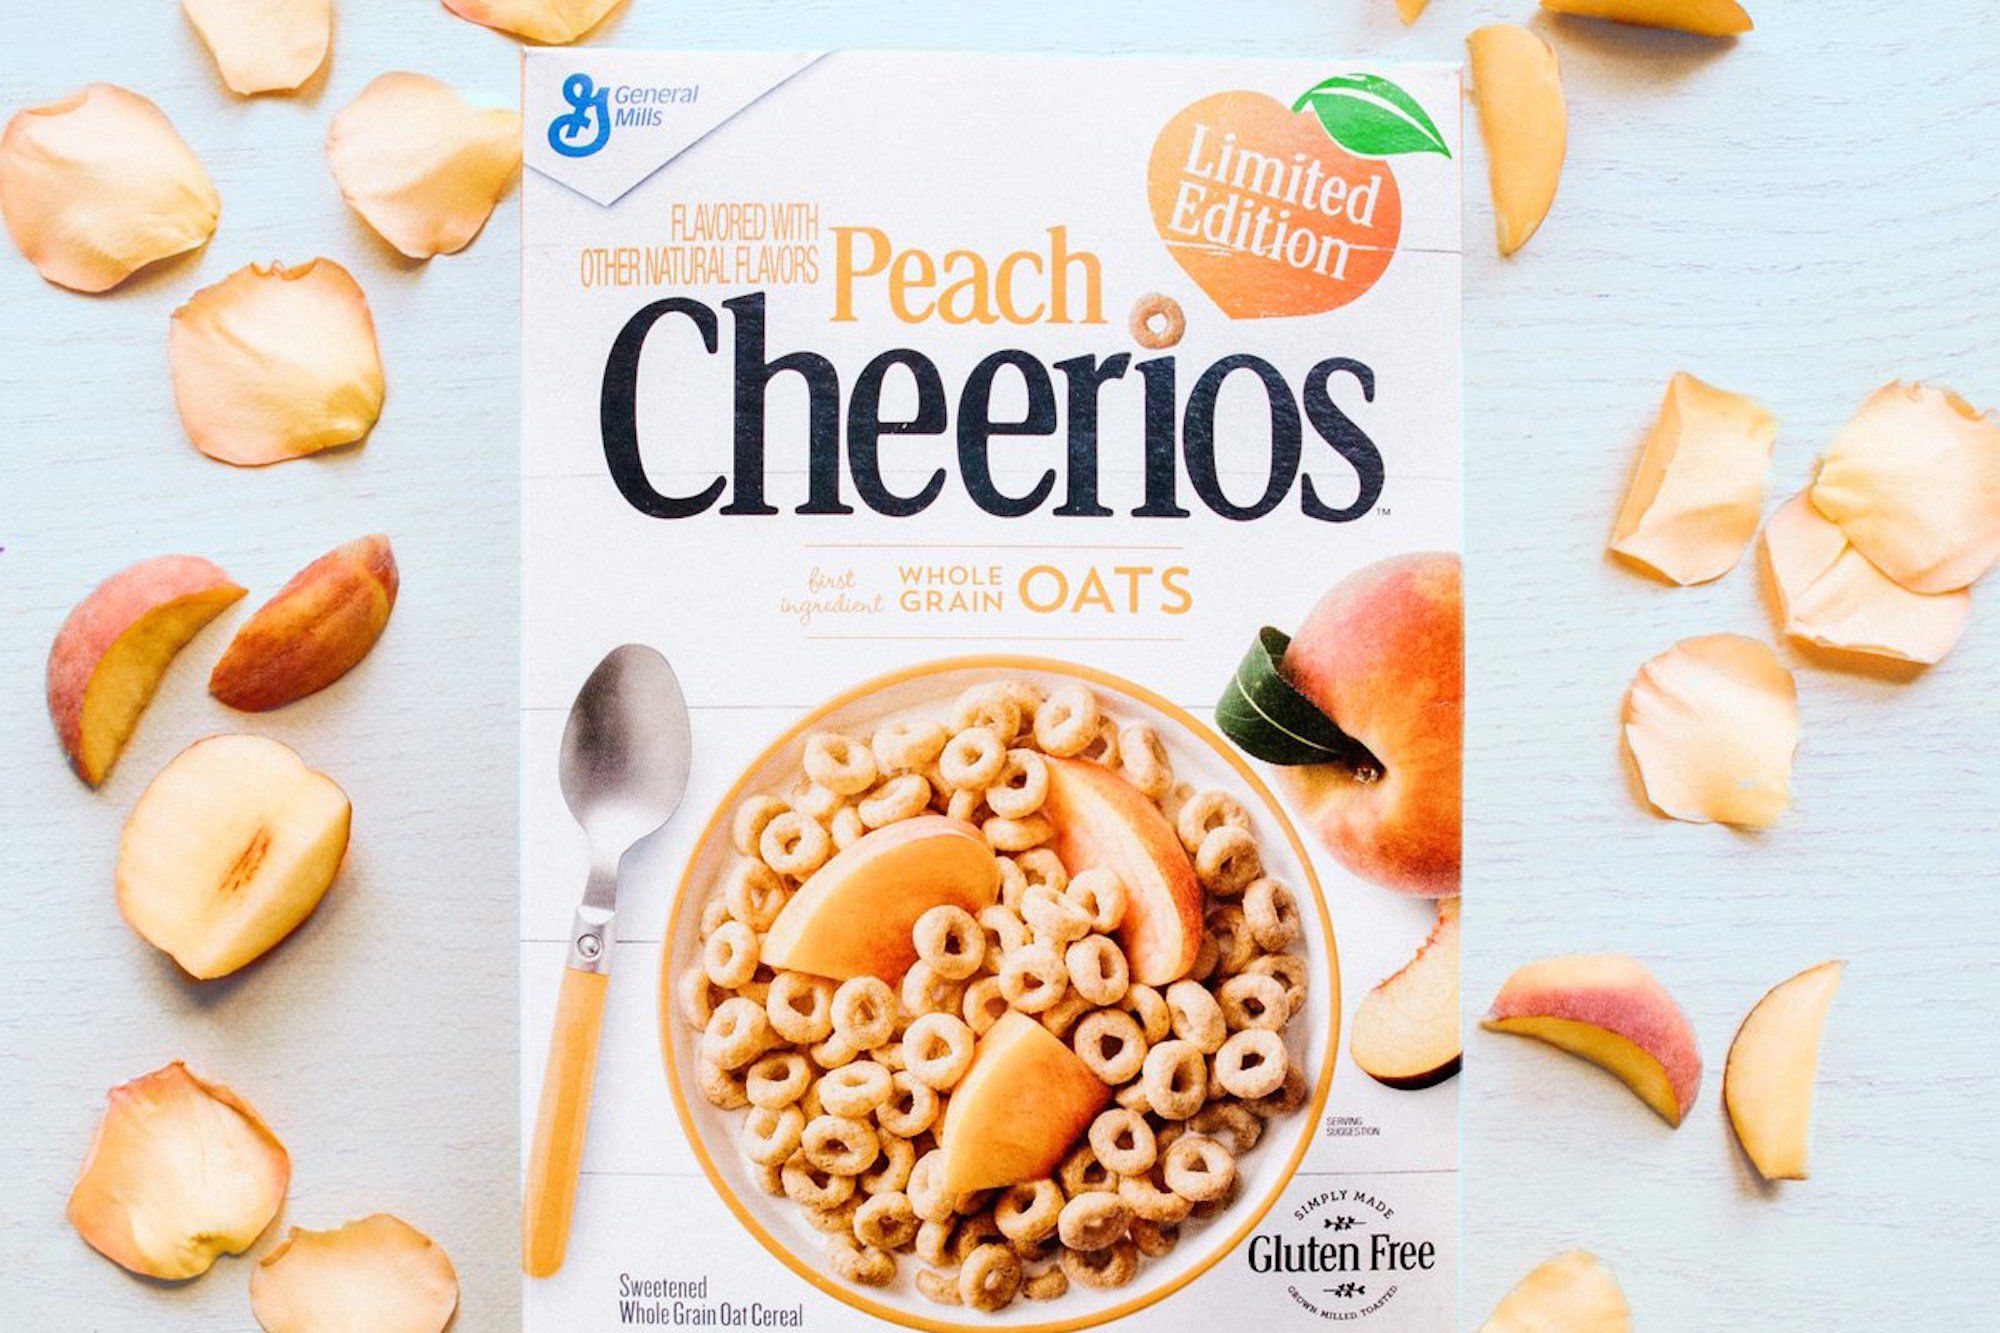 Limited Edition Peach Cheerios Are Coming Soon